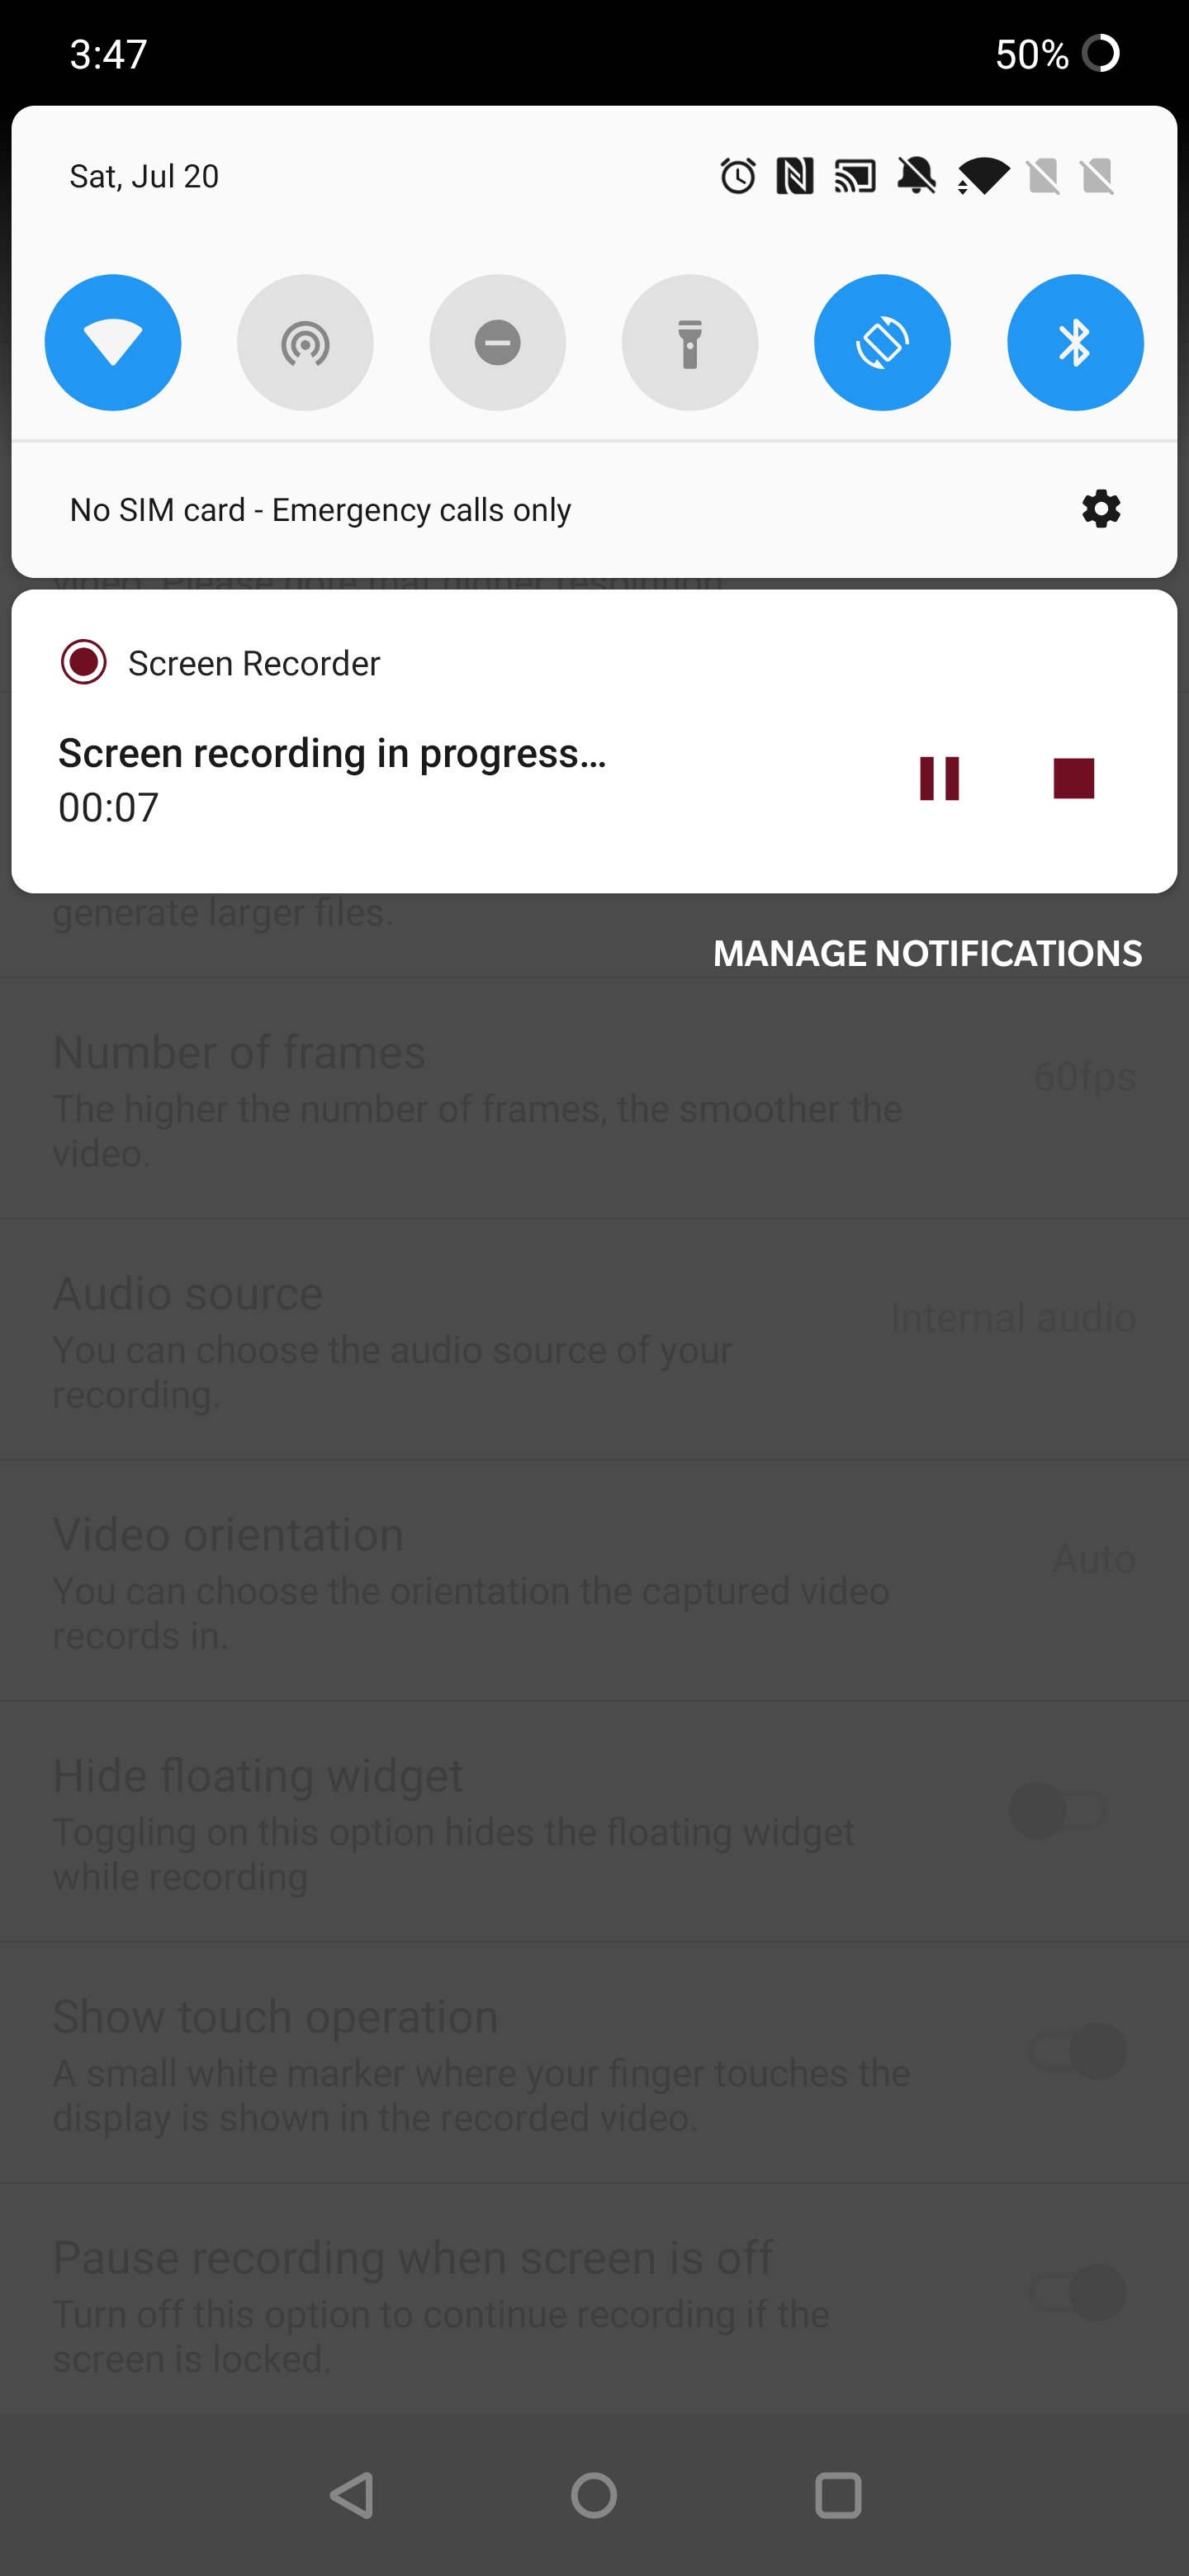 OnePlus Screen Recorder adds frame rate setting and floating